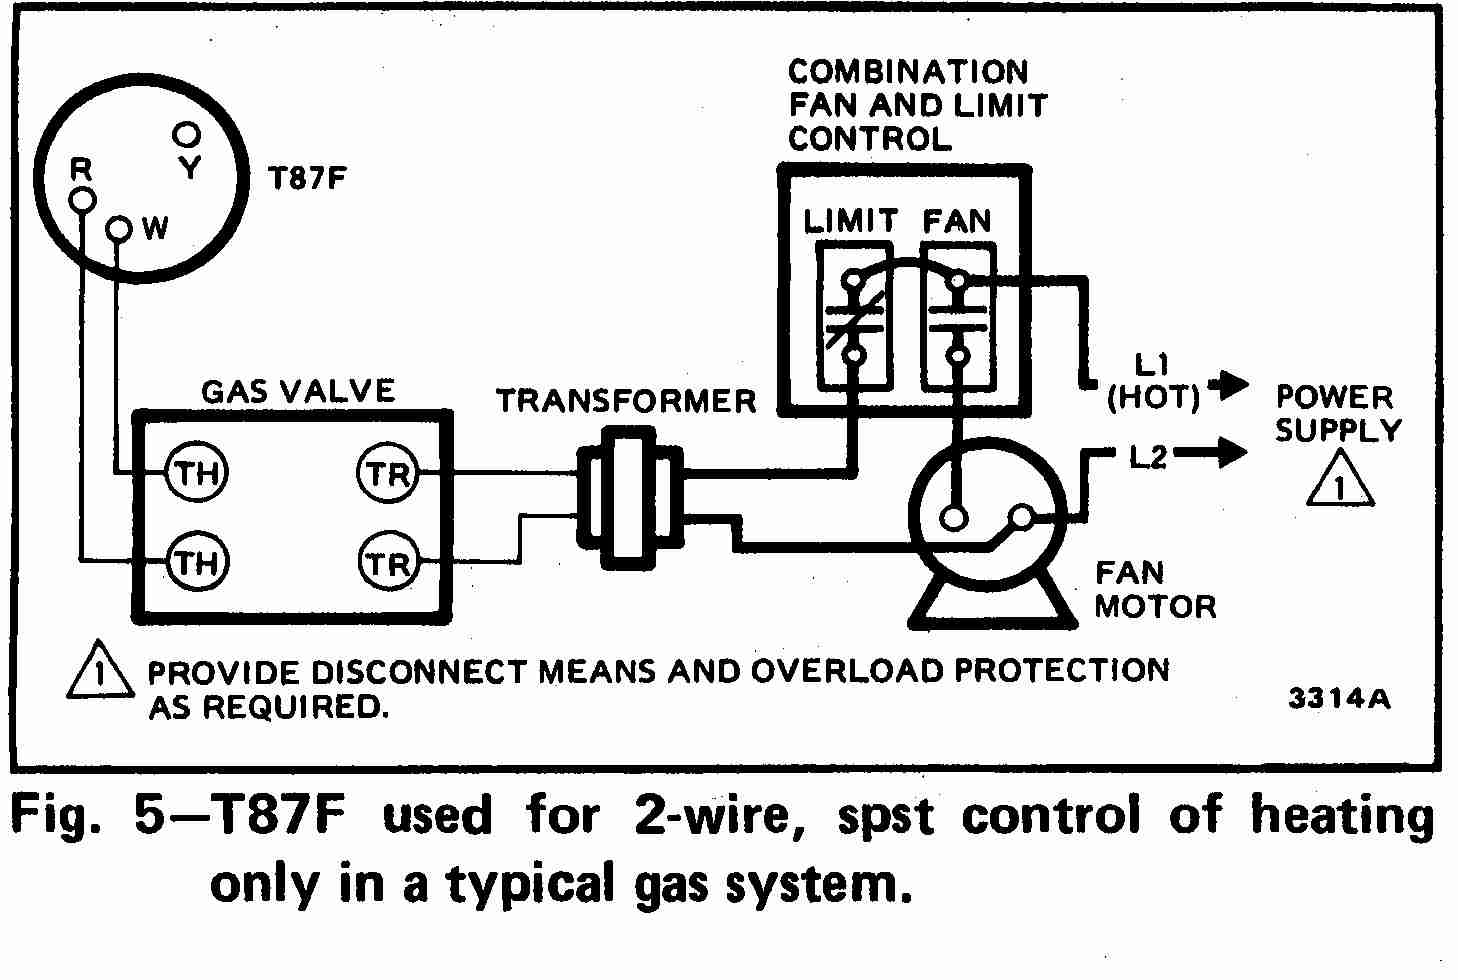 room thermostat wiring diagrams for hvac systems line voltage thermostat wiring diagram honeywell t87f thermostat wiring diagram for 2 wire, spst control of heating only in